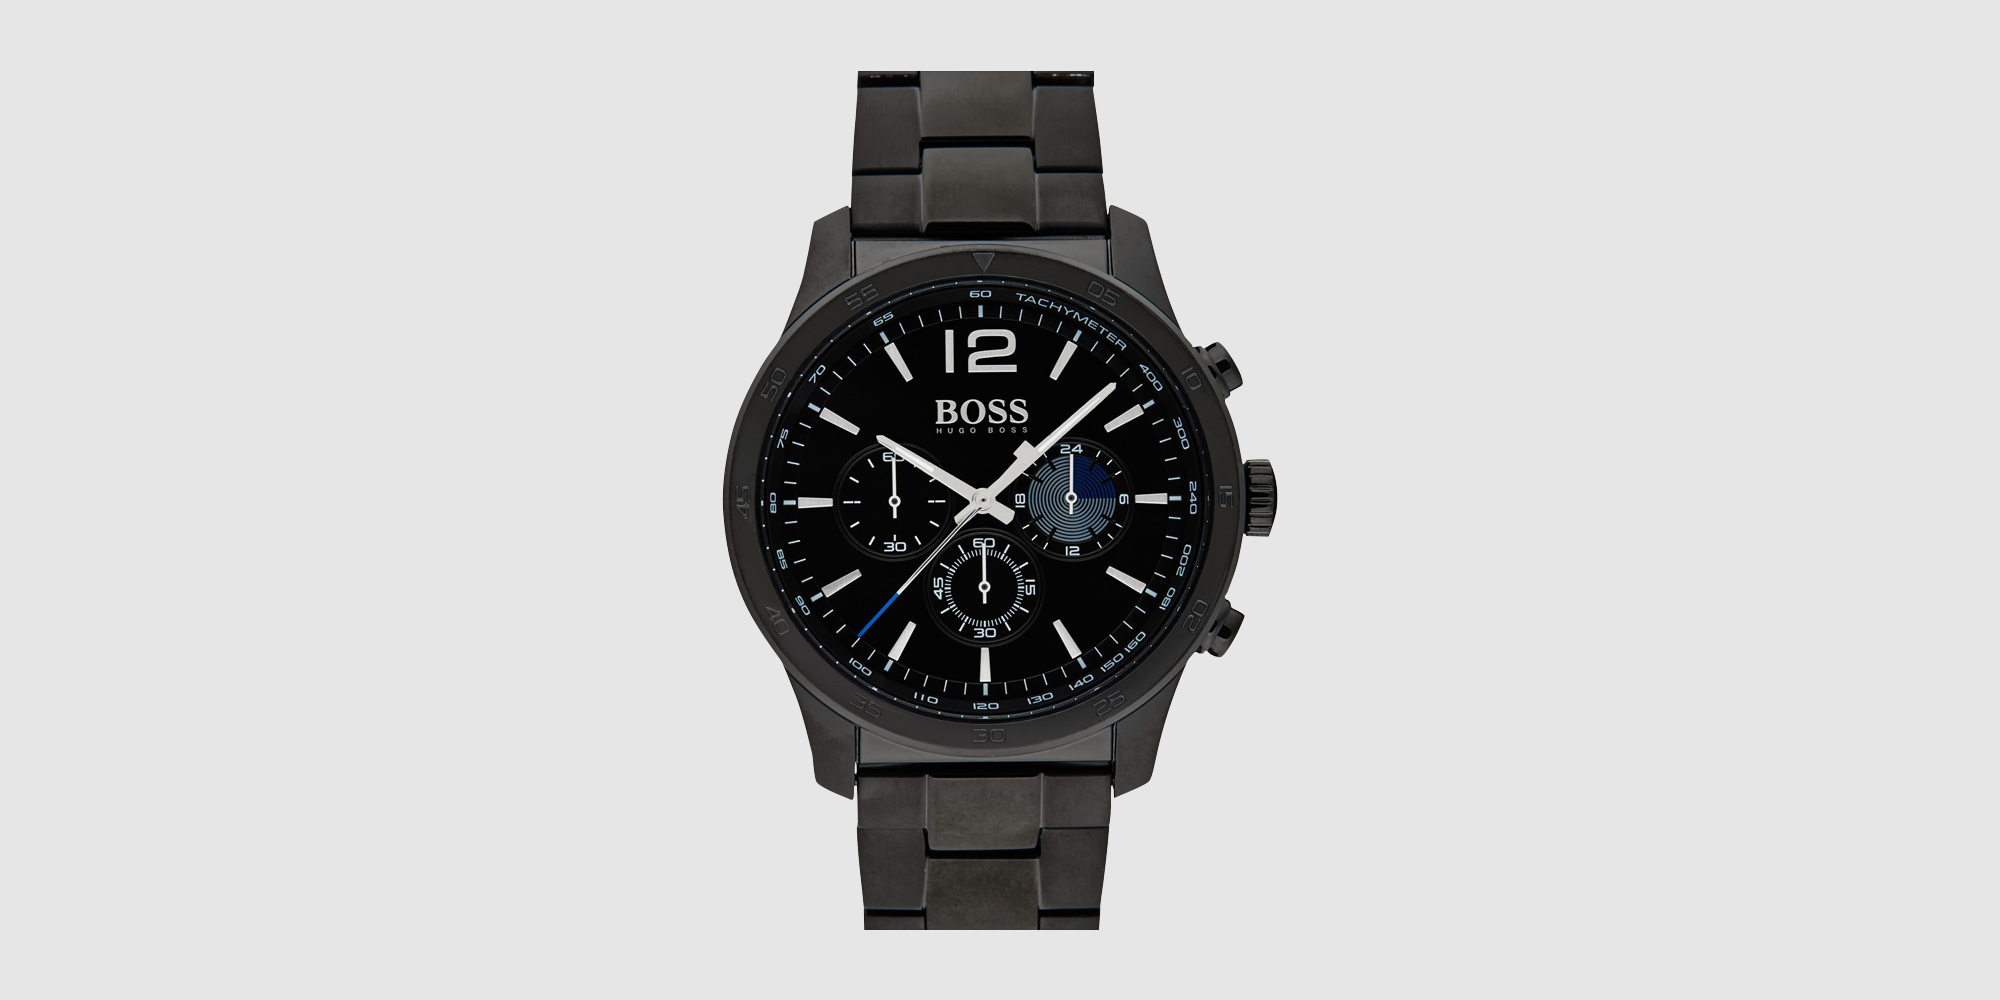 Men's Watches Are Up to 70% Off at Nordstrom Rack